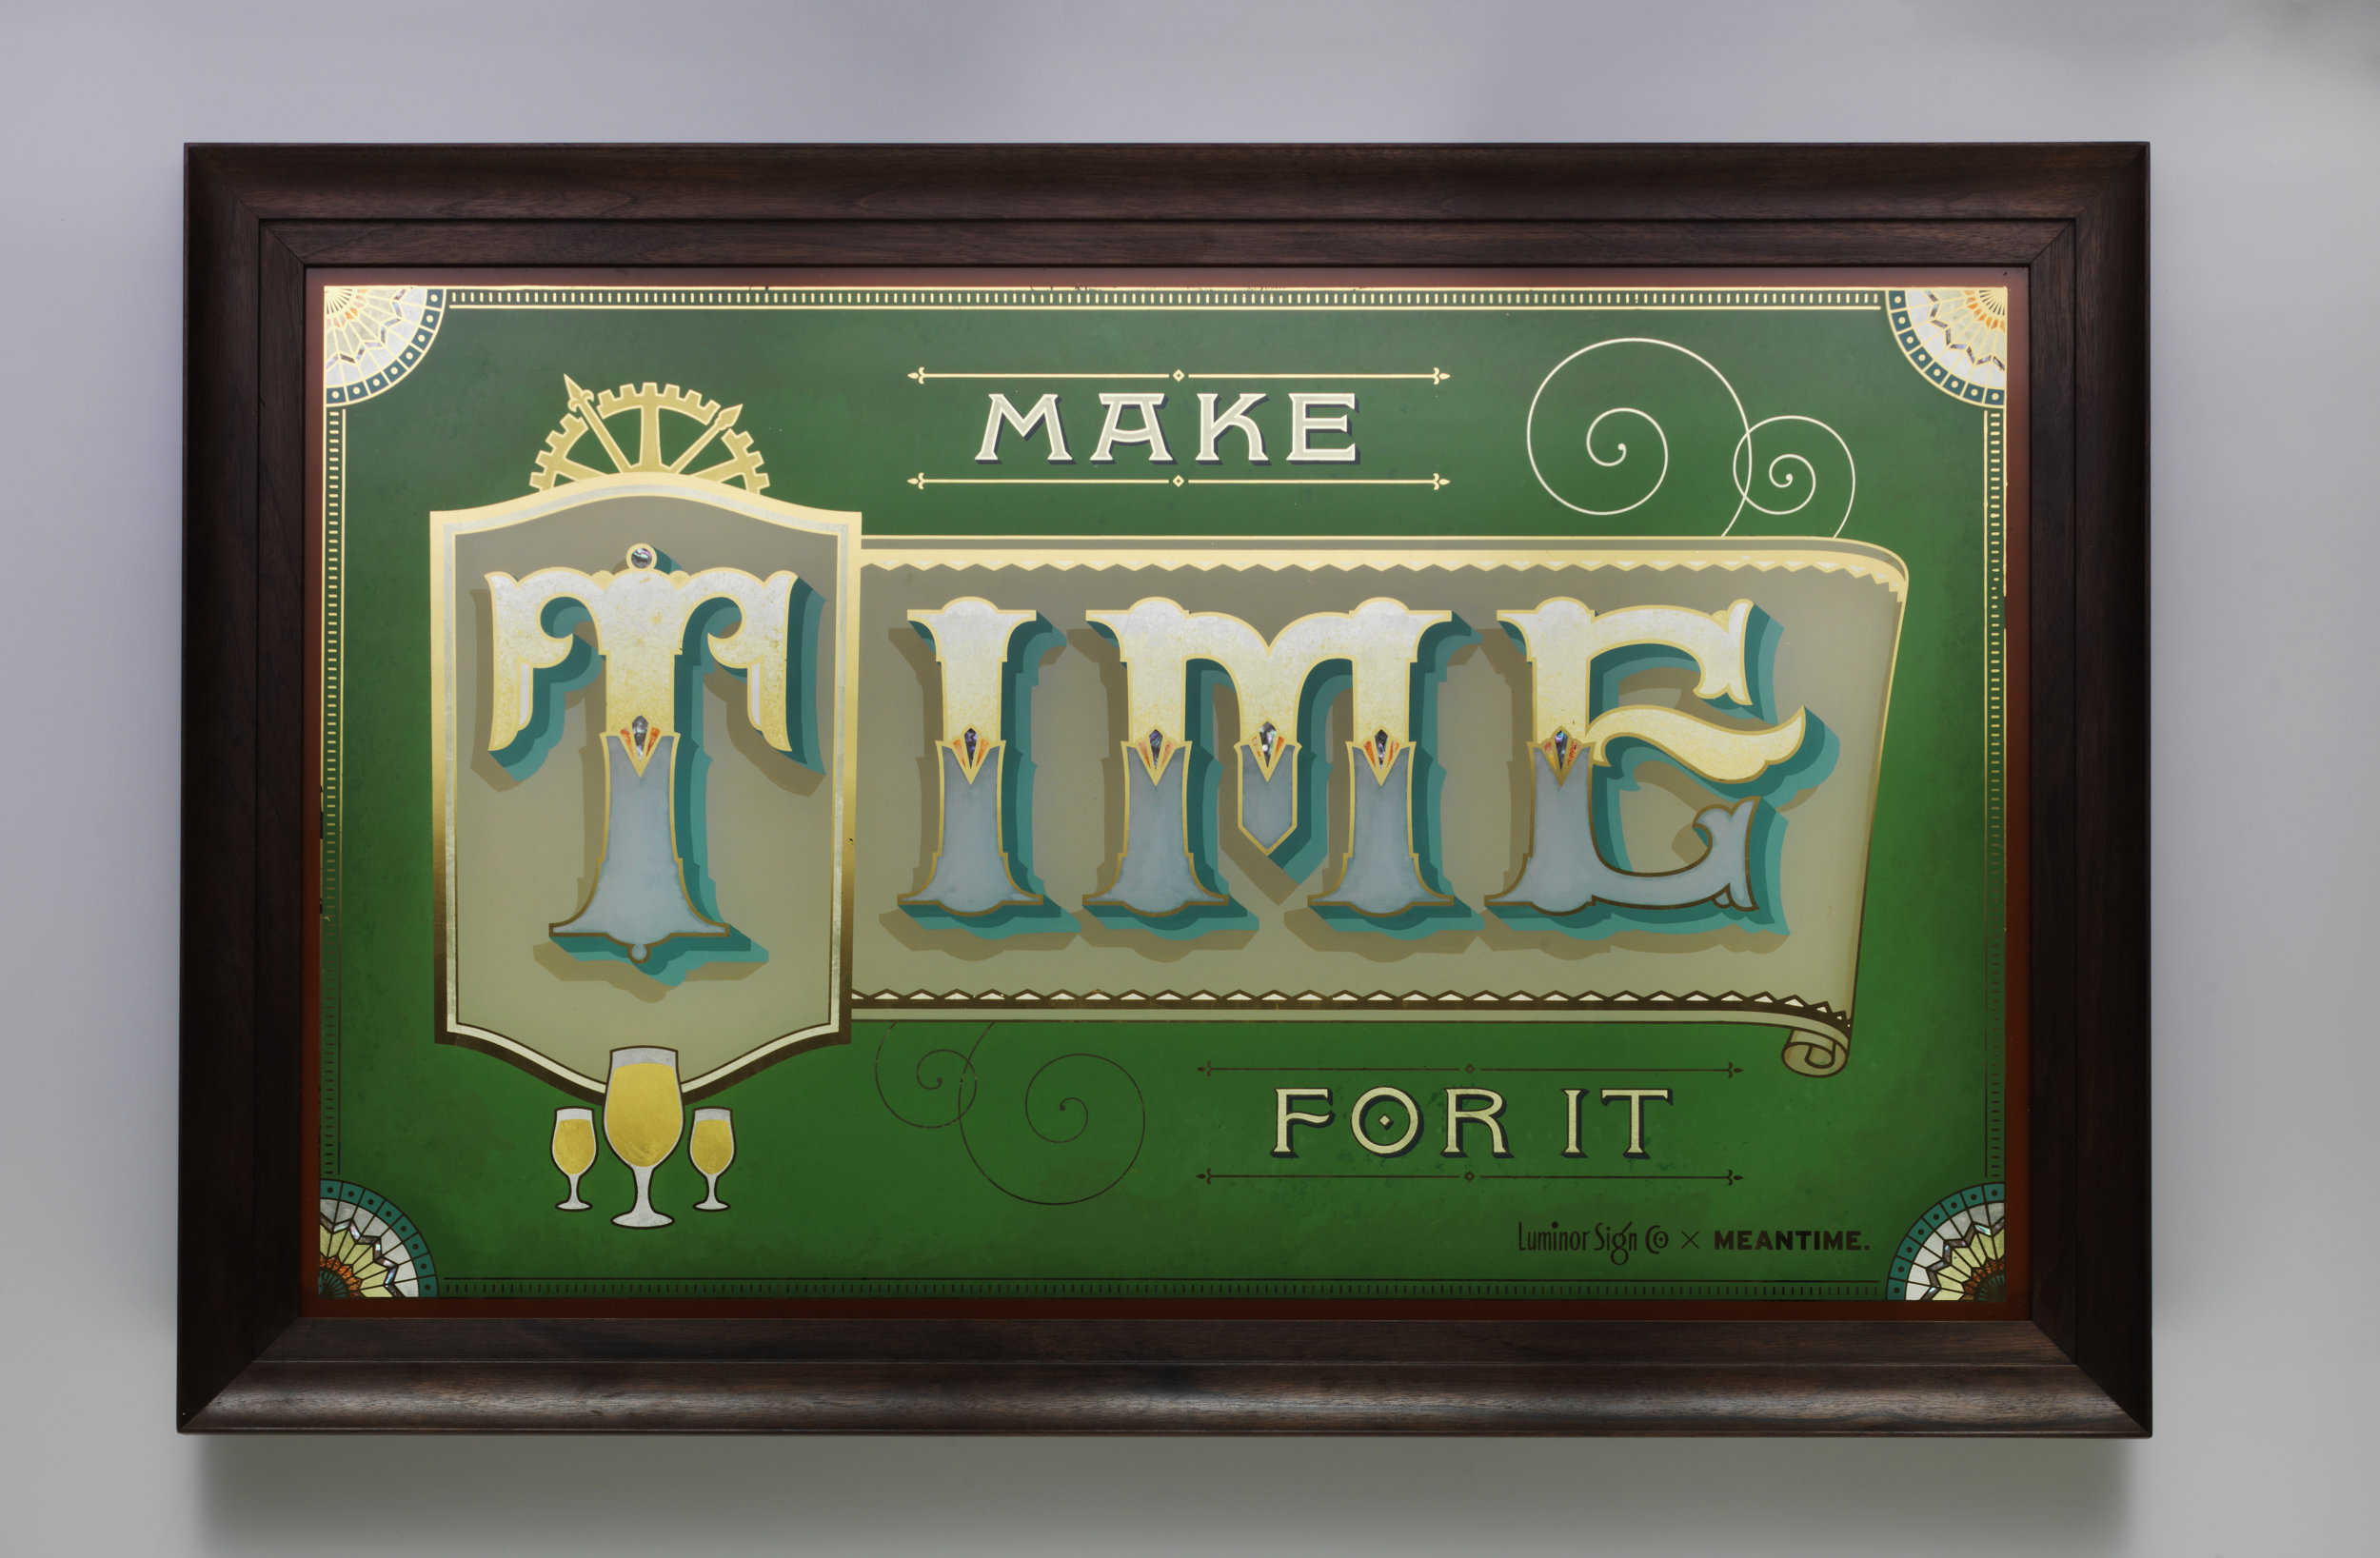 mirror meantime brewery make time for it gold leaf pearl inlay bespoke frame hand designed